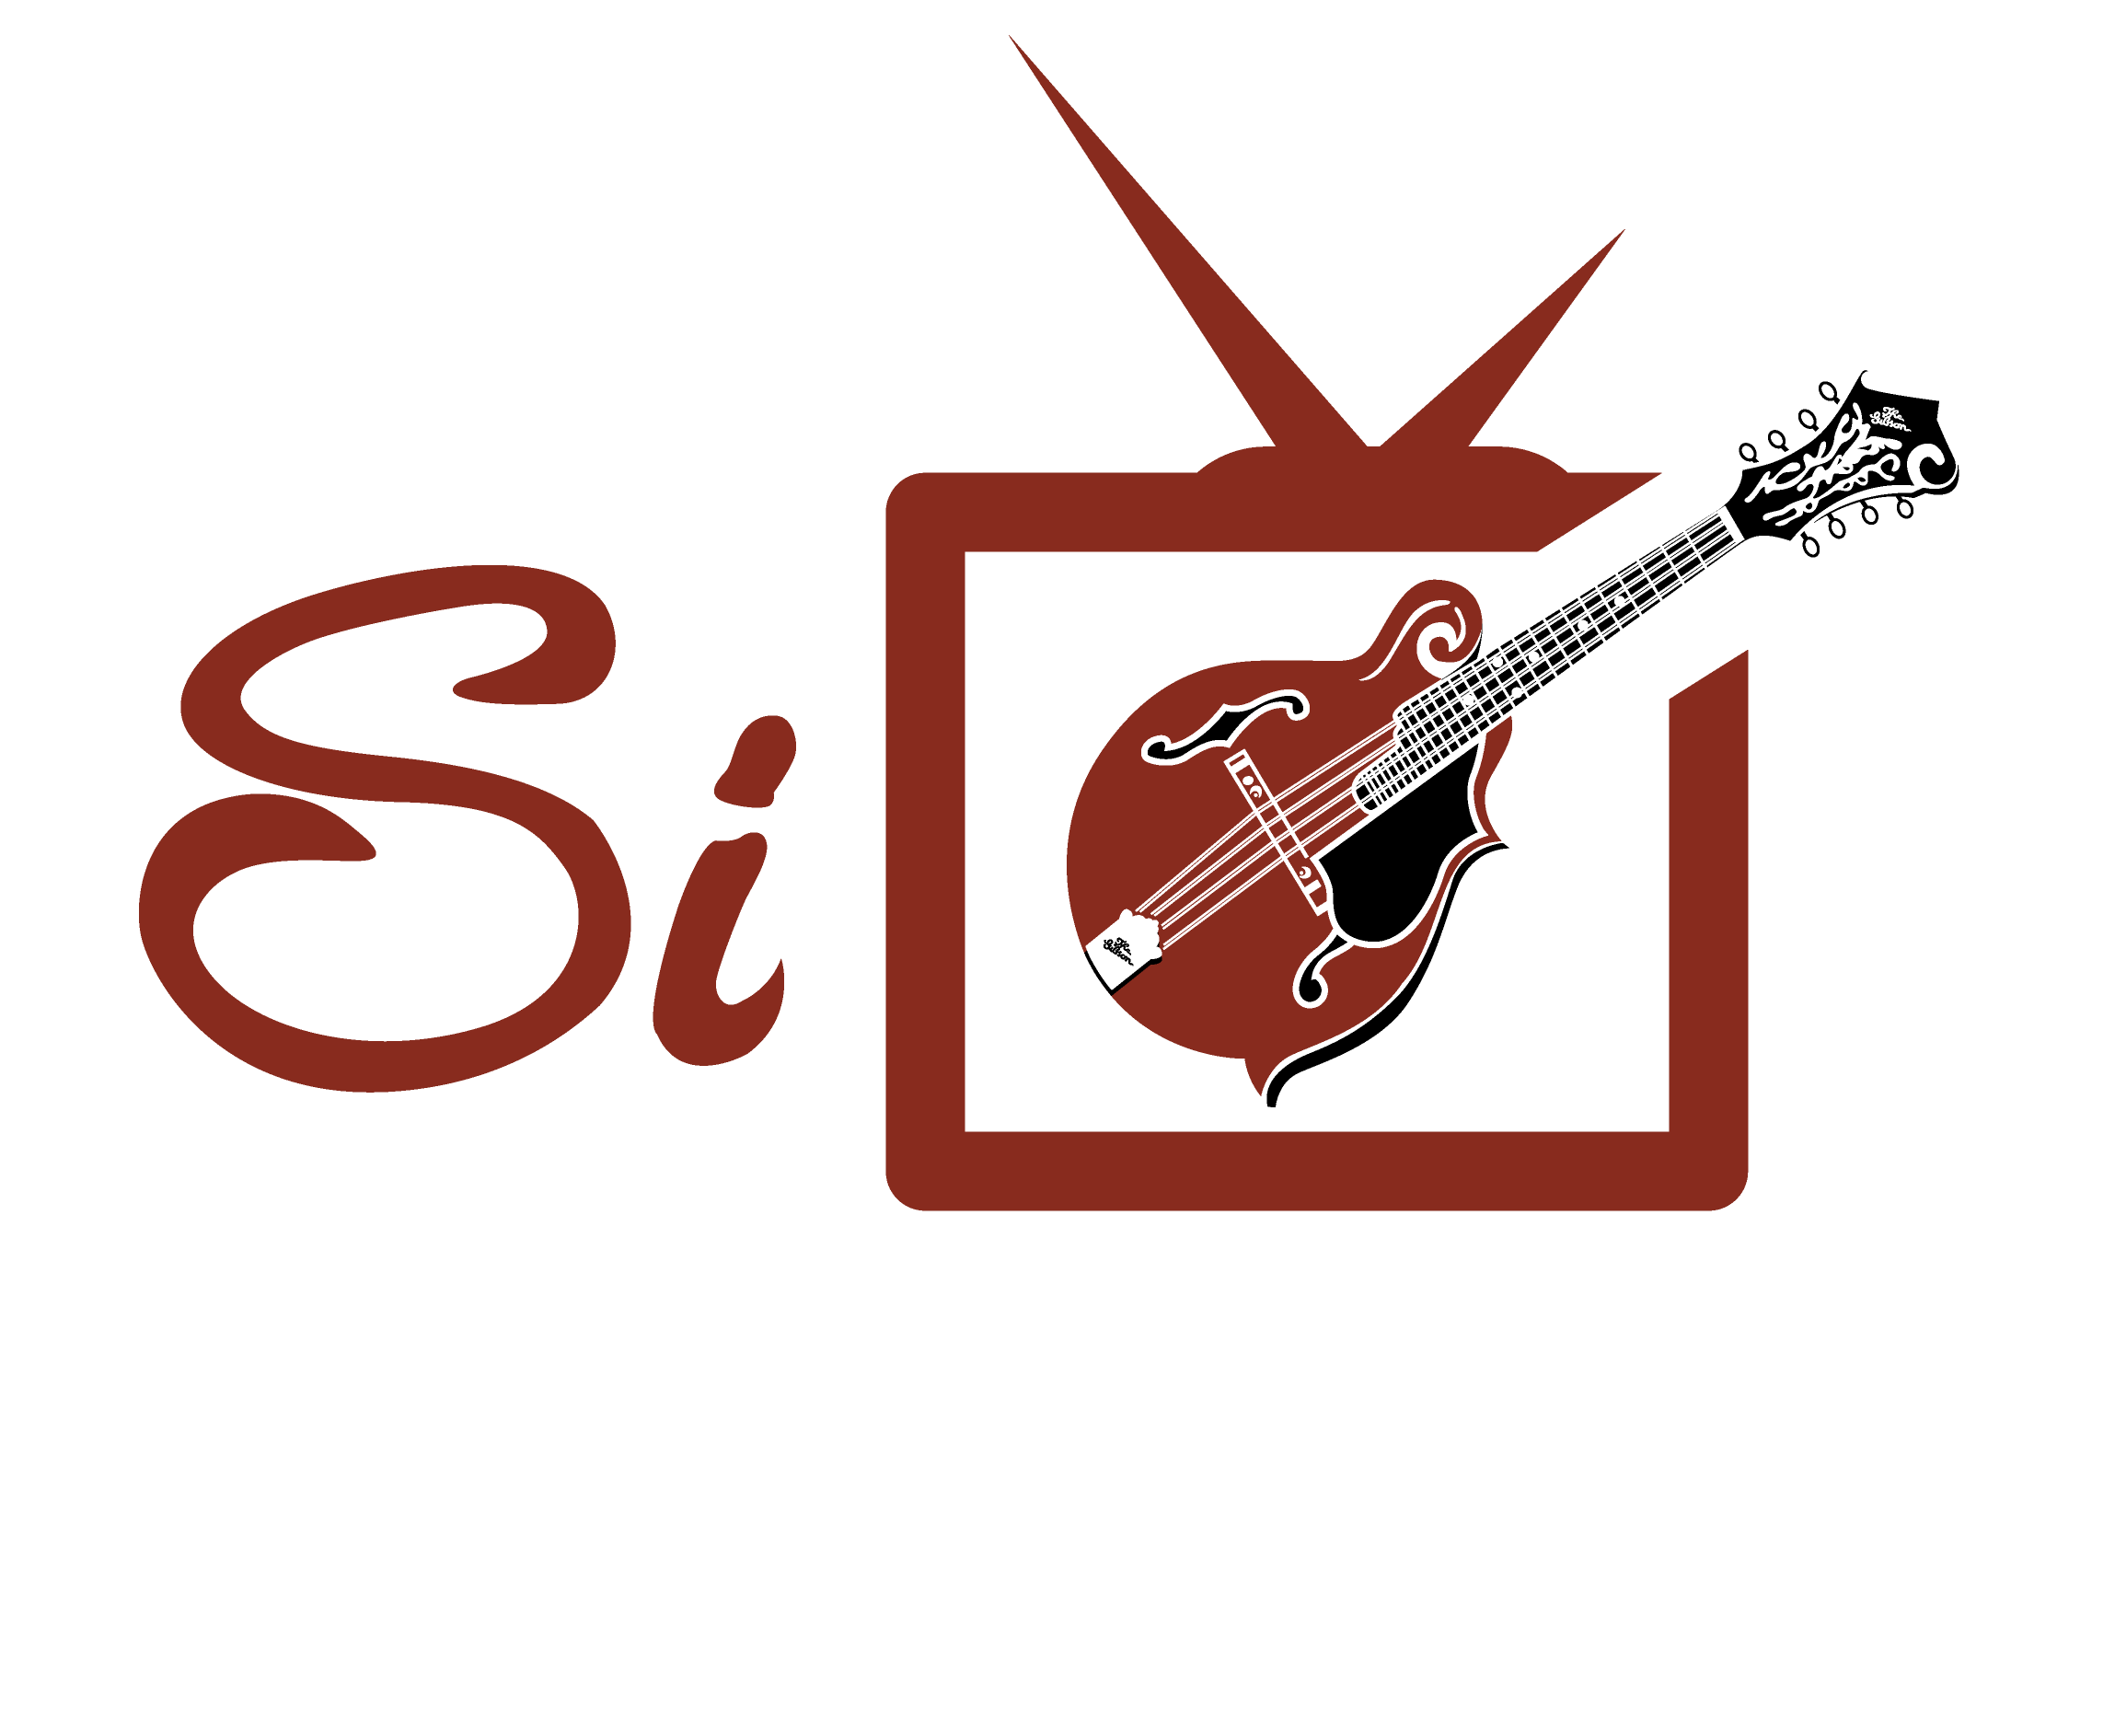 Station Inn TV